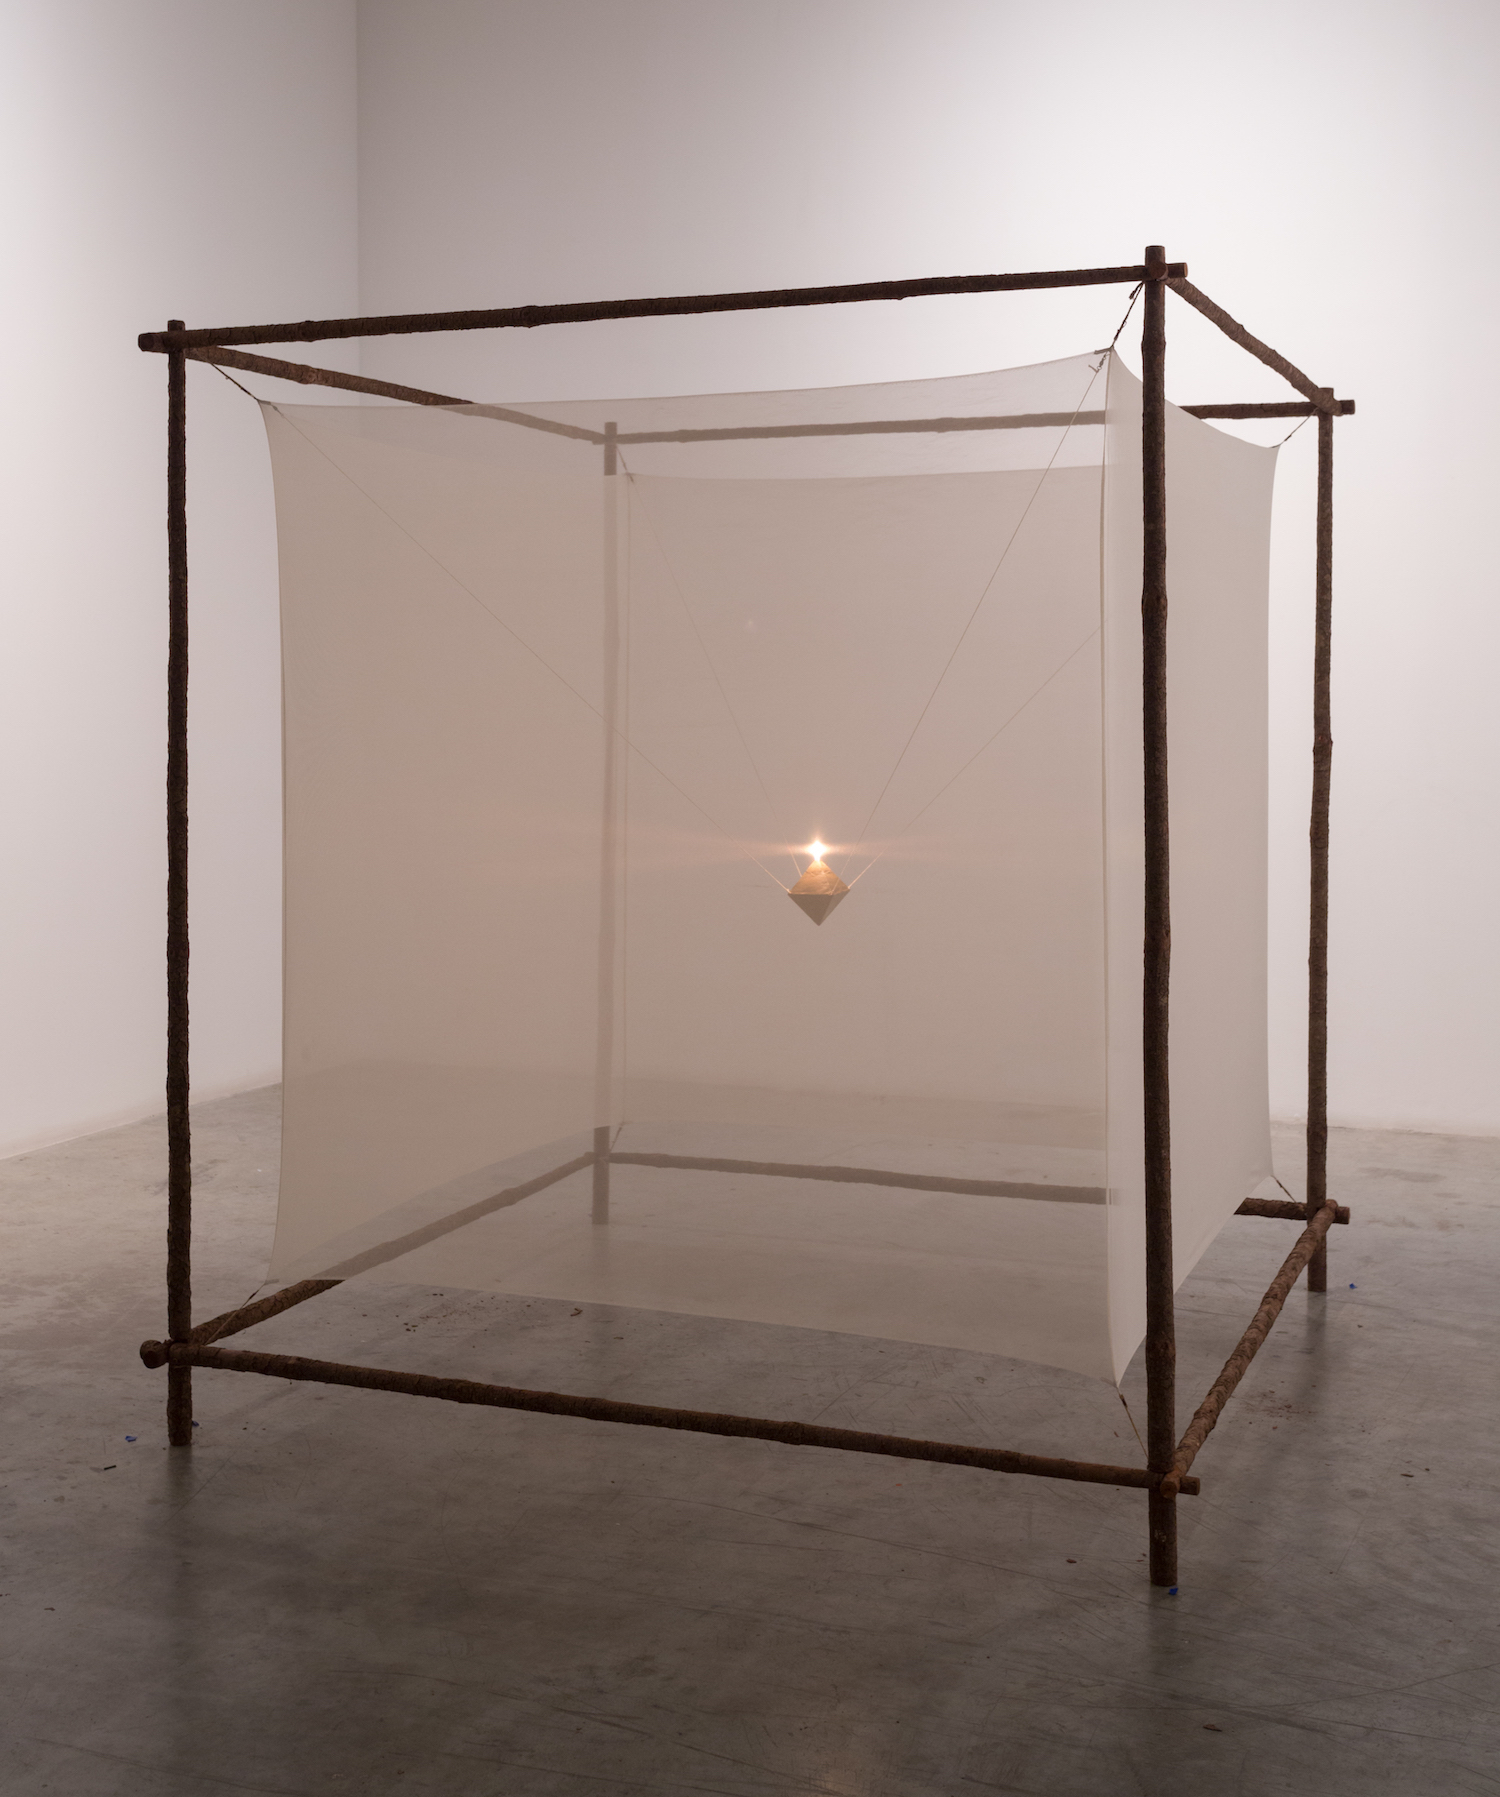 Hossien Valamanesh  Light Within II 1982 Wood, fabric, ceramic, oil burner 182 x 182 x 182 cm